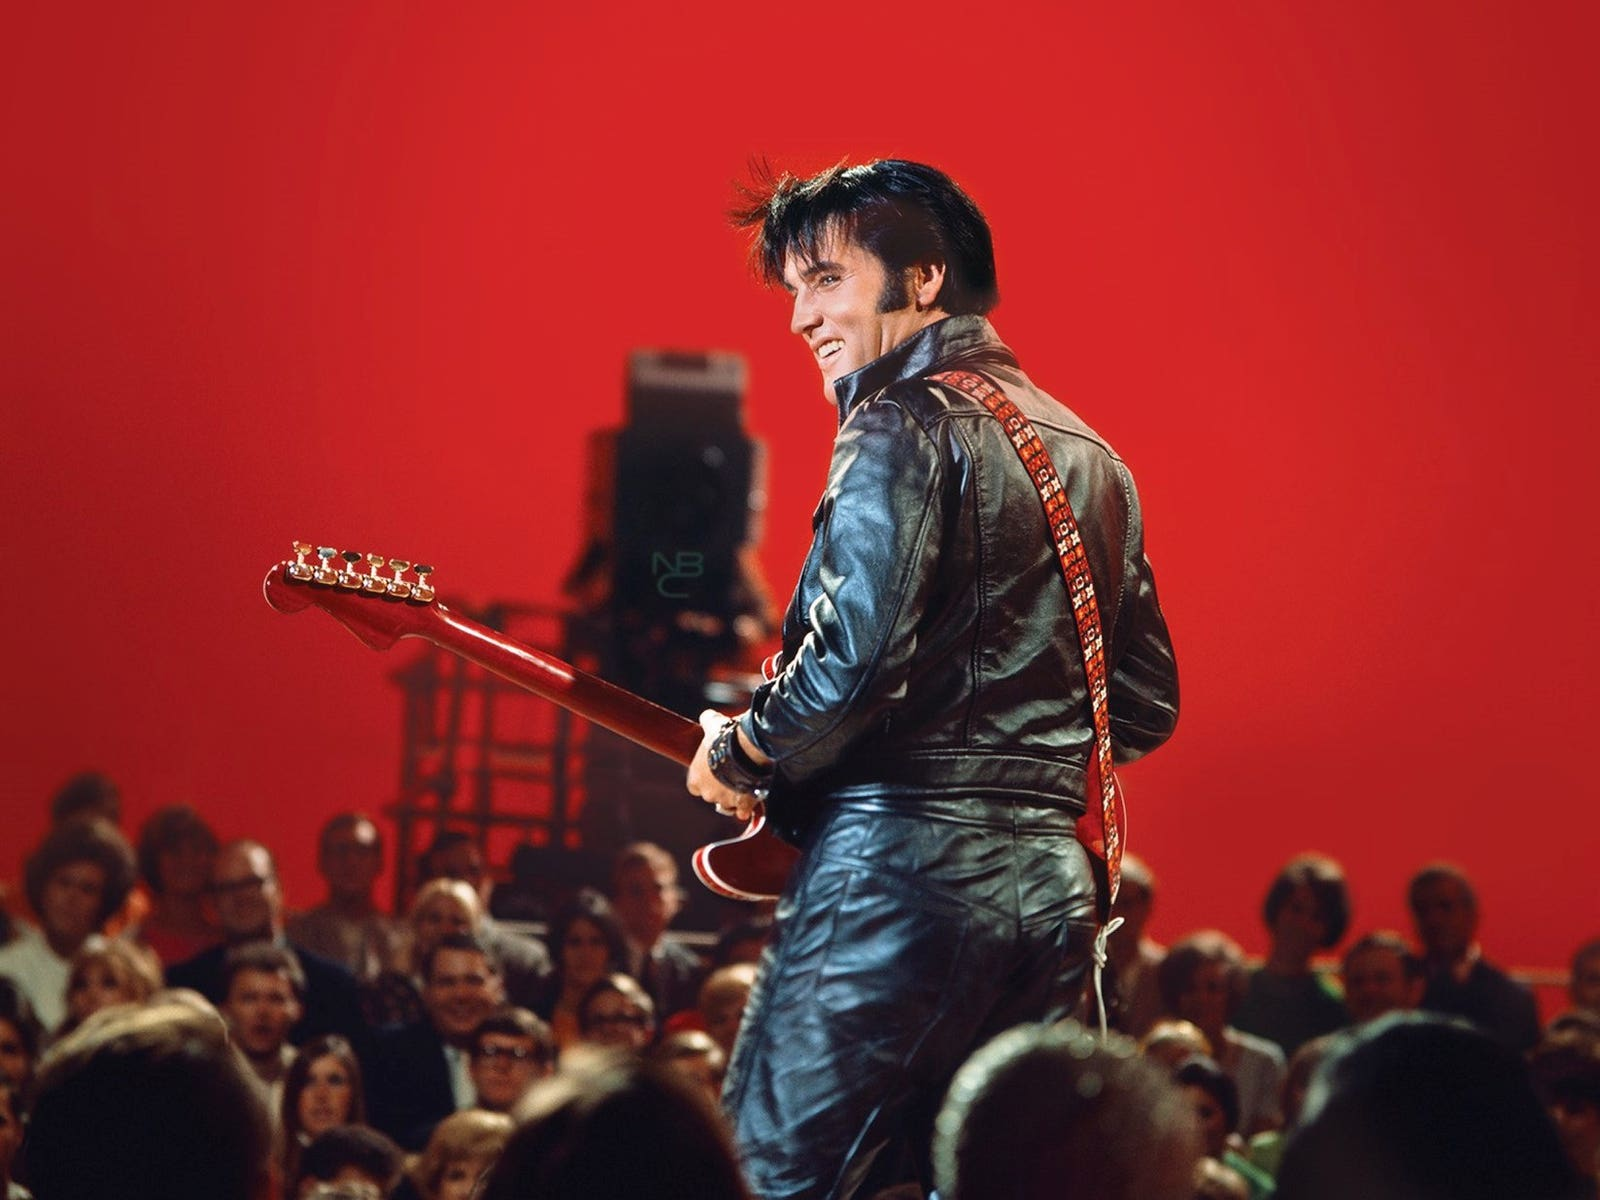 Elvis Presley on stage during his '68 Comeback Special at NBC Studios in Burbank